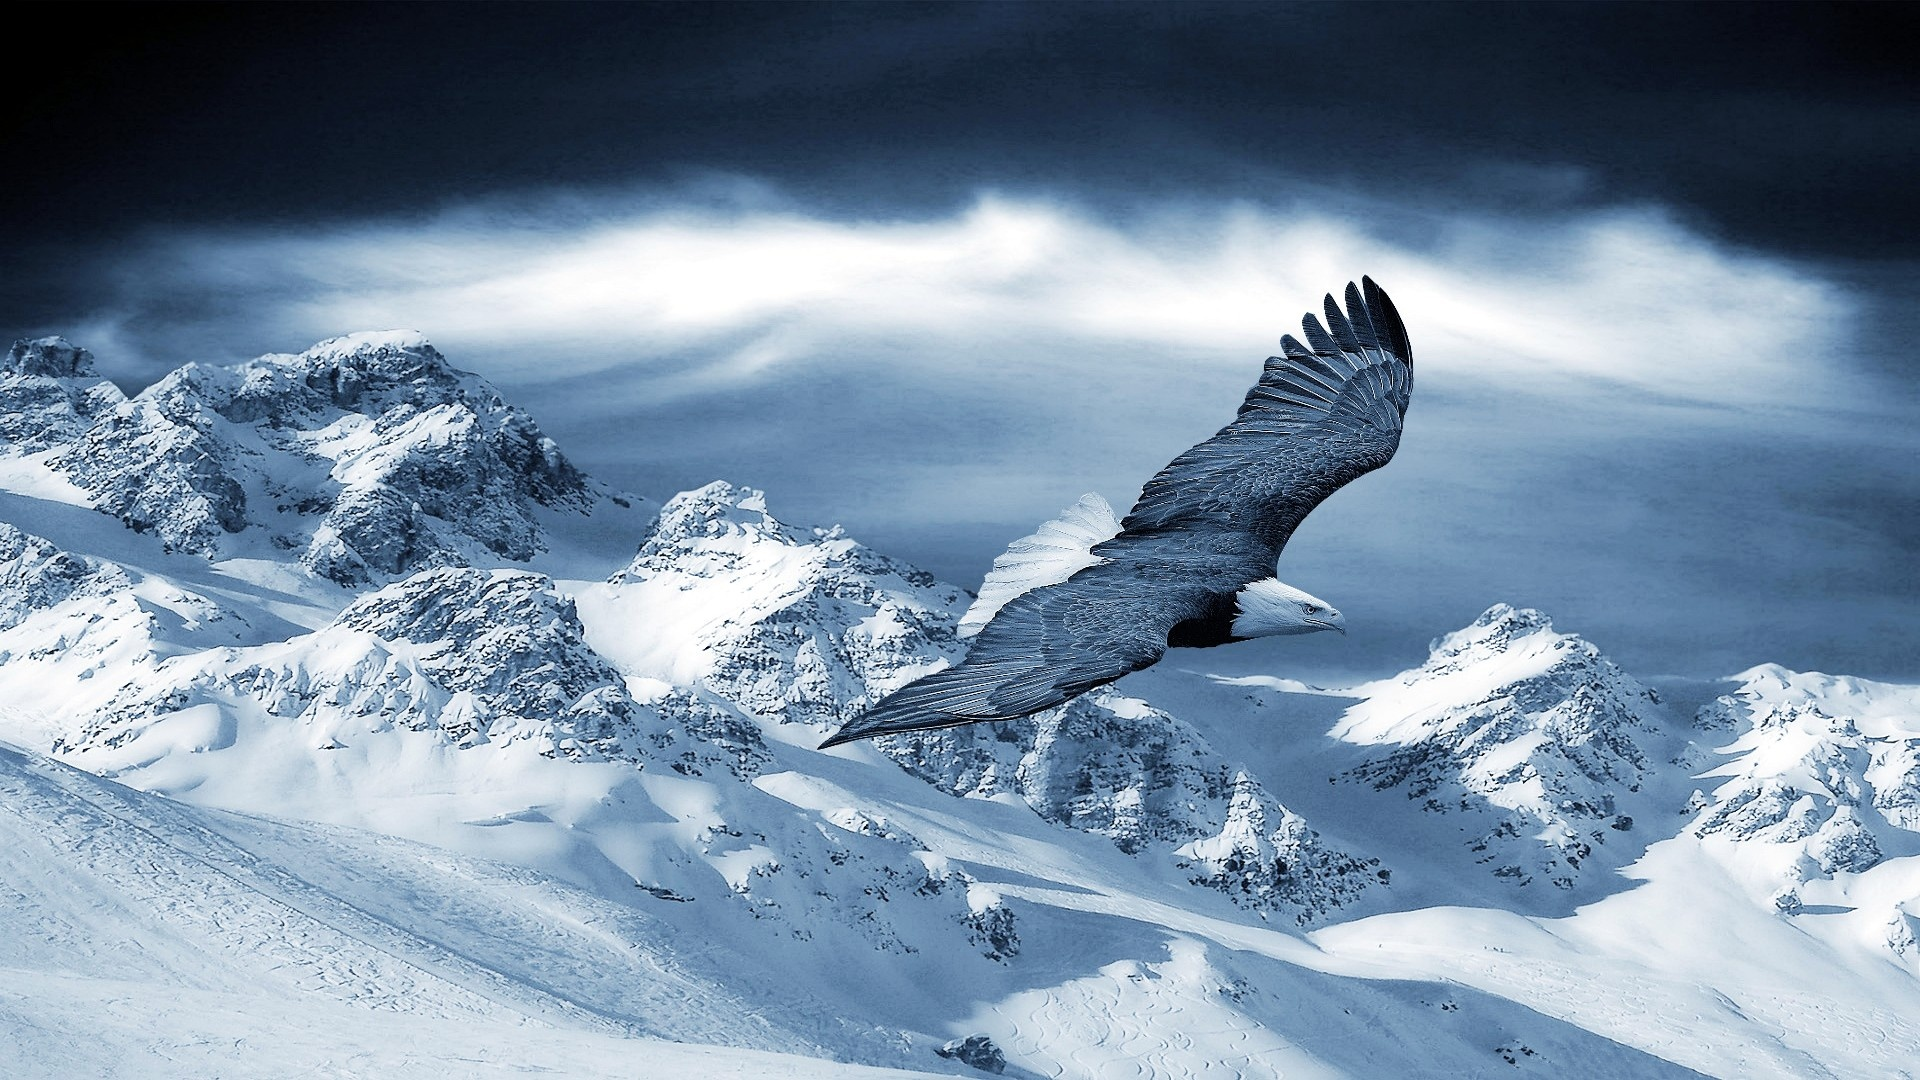 winter-Eagle-wallpaper-desktop-p423